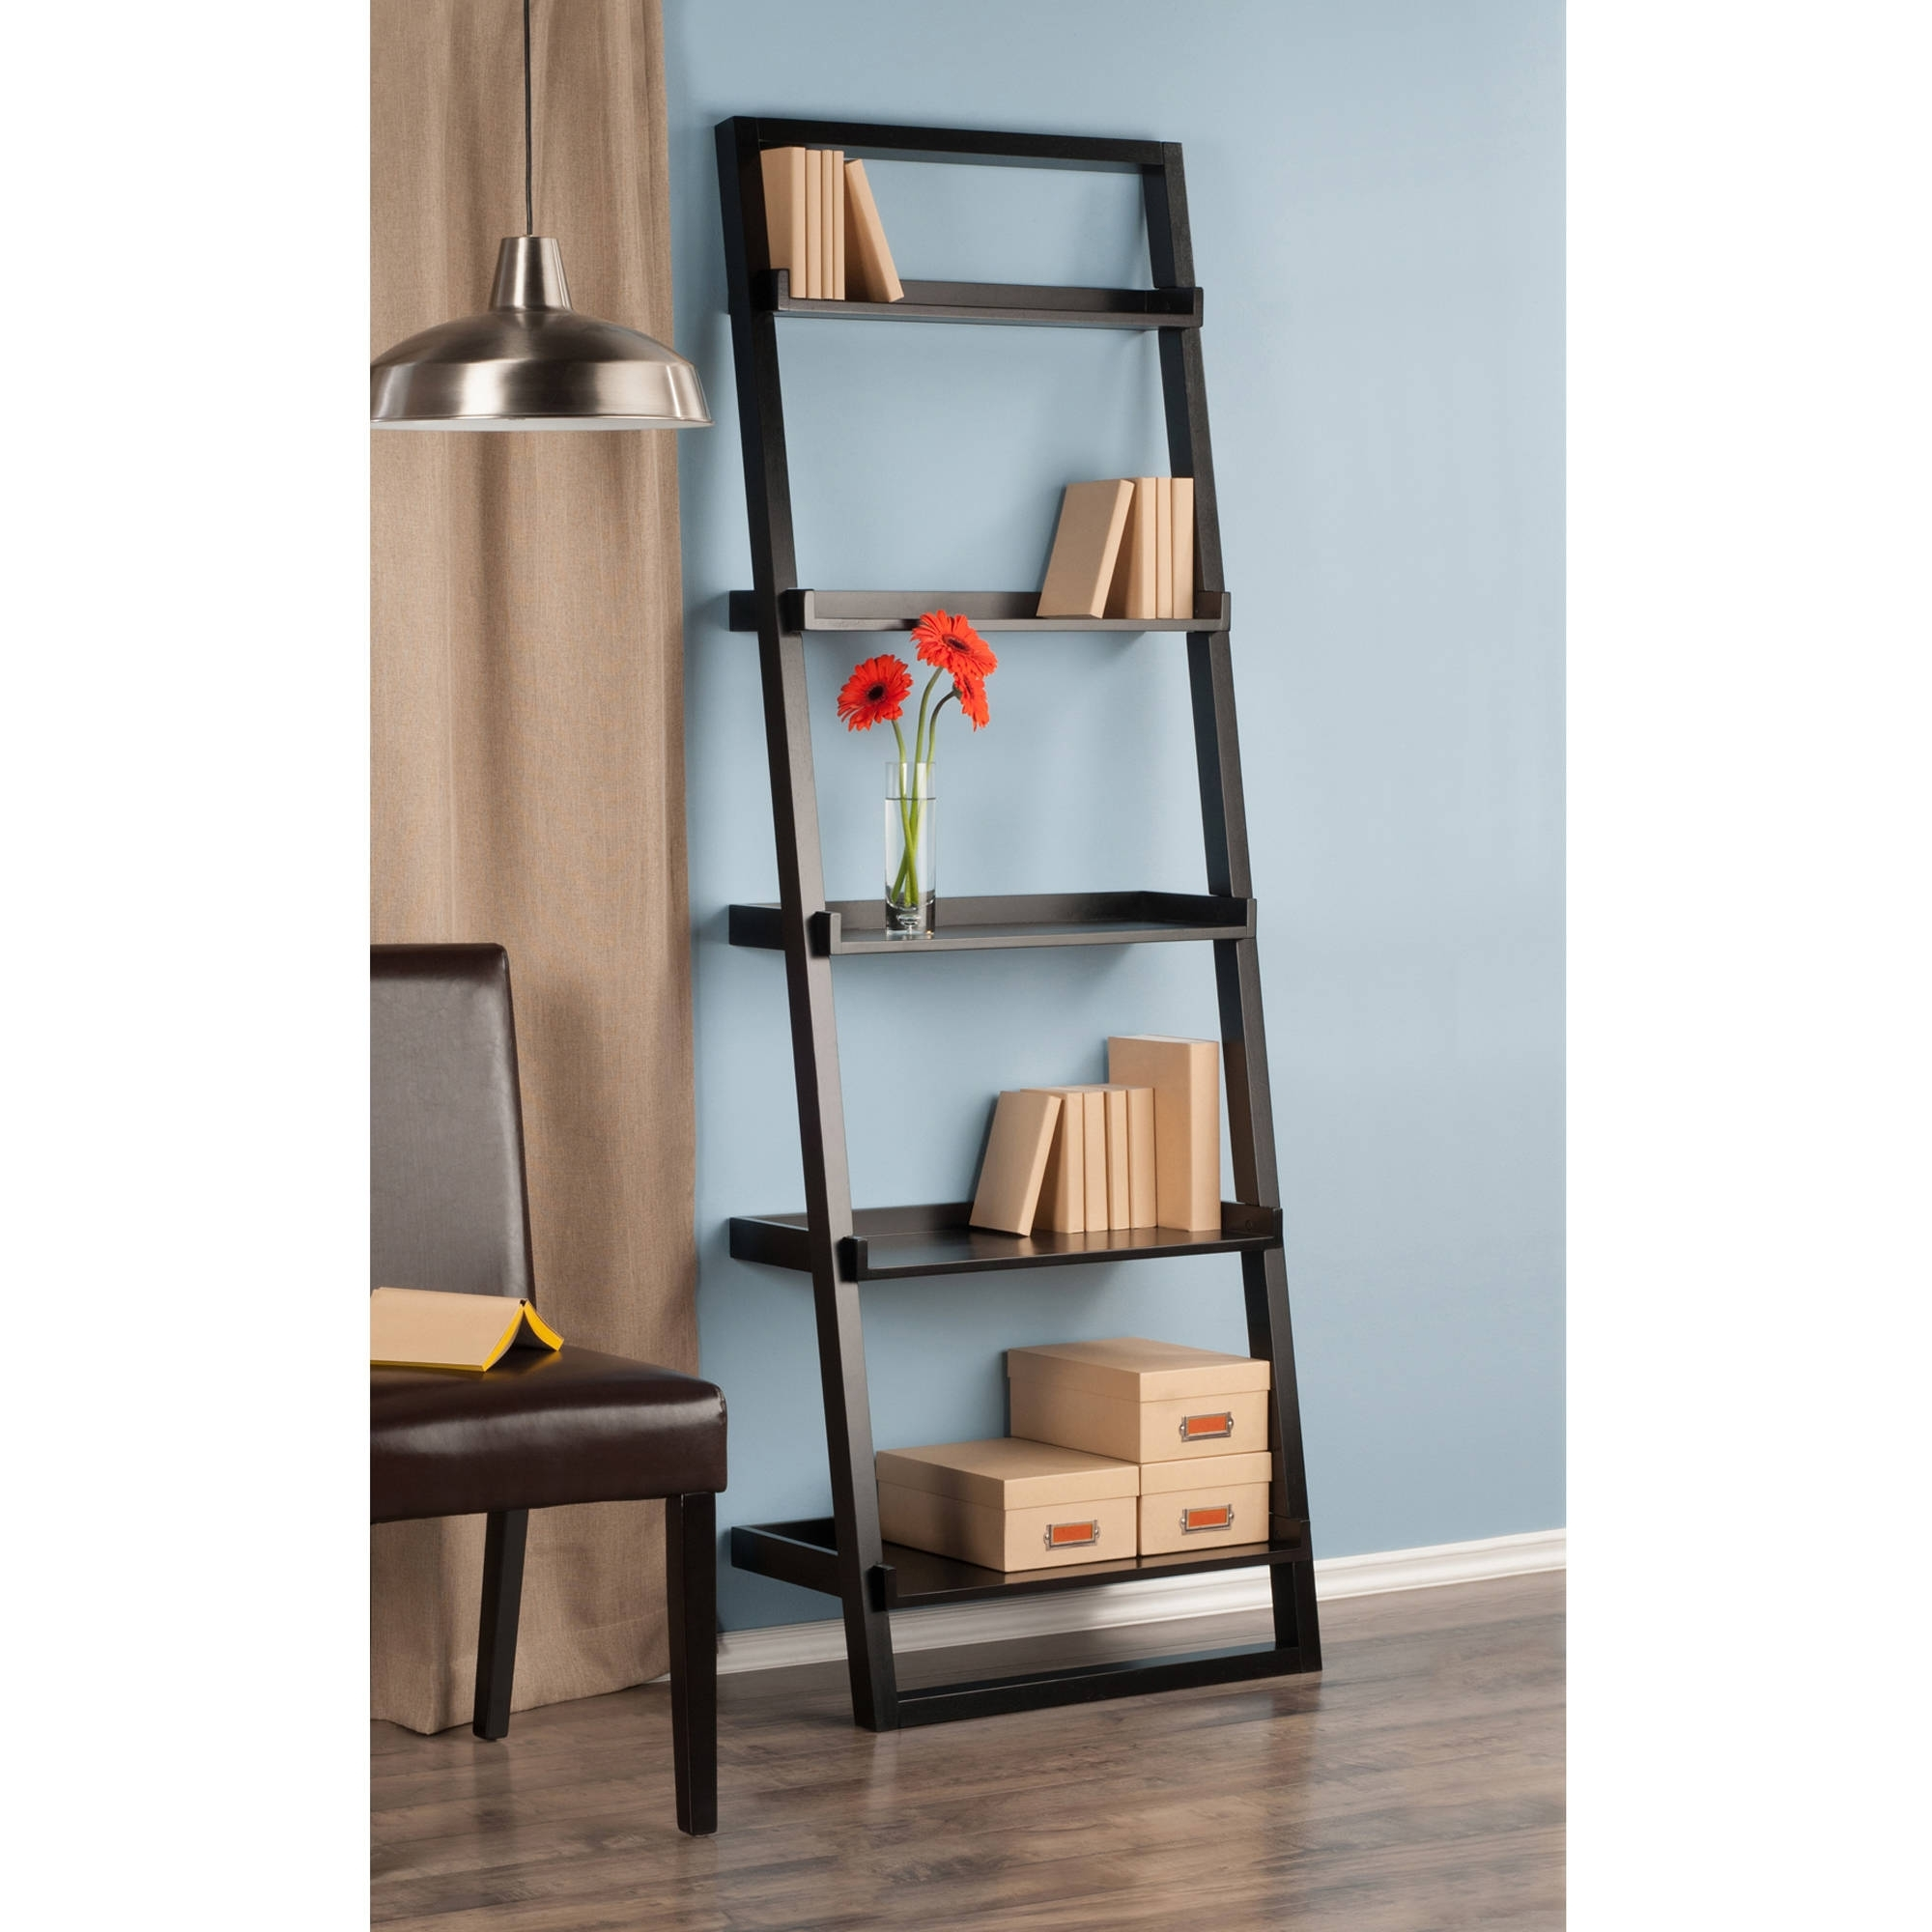 Black Bookcases Walmart Pertaining To Recent Leaning Wall 5 Shelf Bookcase, Black – Walmart (View 5 of 15)